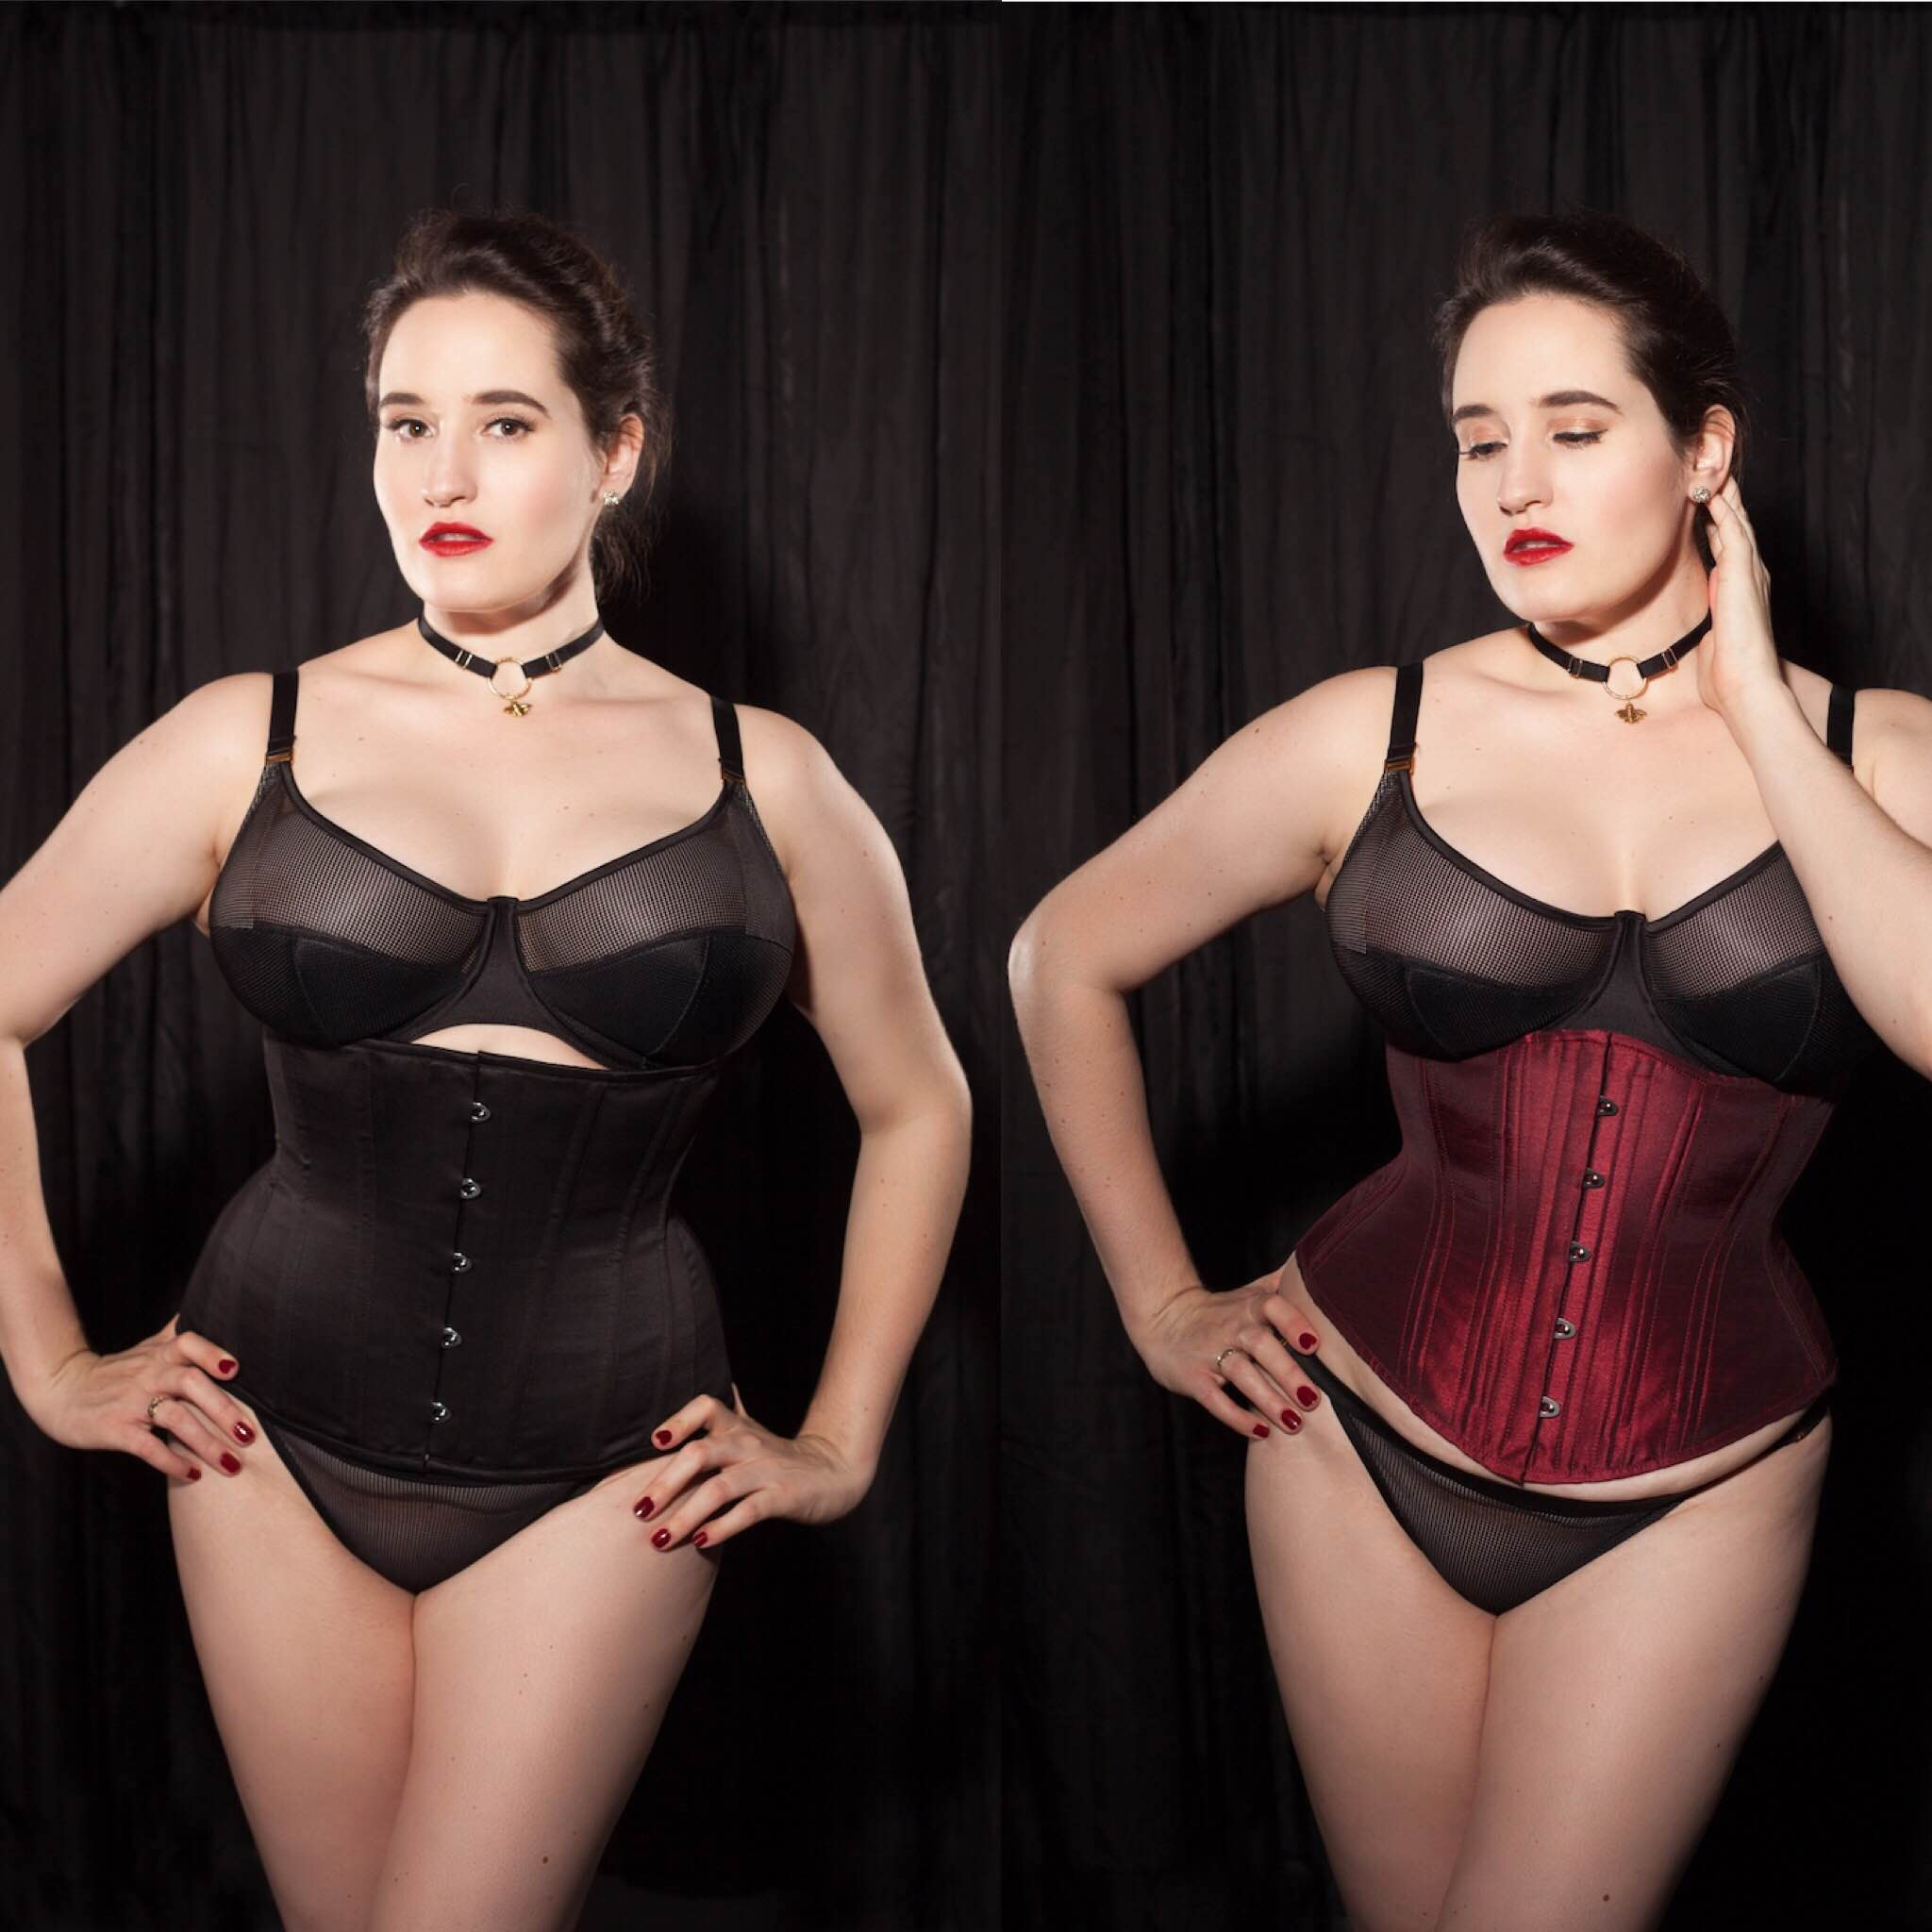 cd351ff17 Off-the-Rack Corset Reviews  What Katie Did and Timeless Trends ...